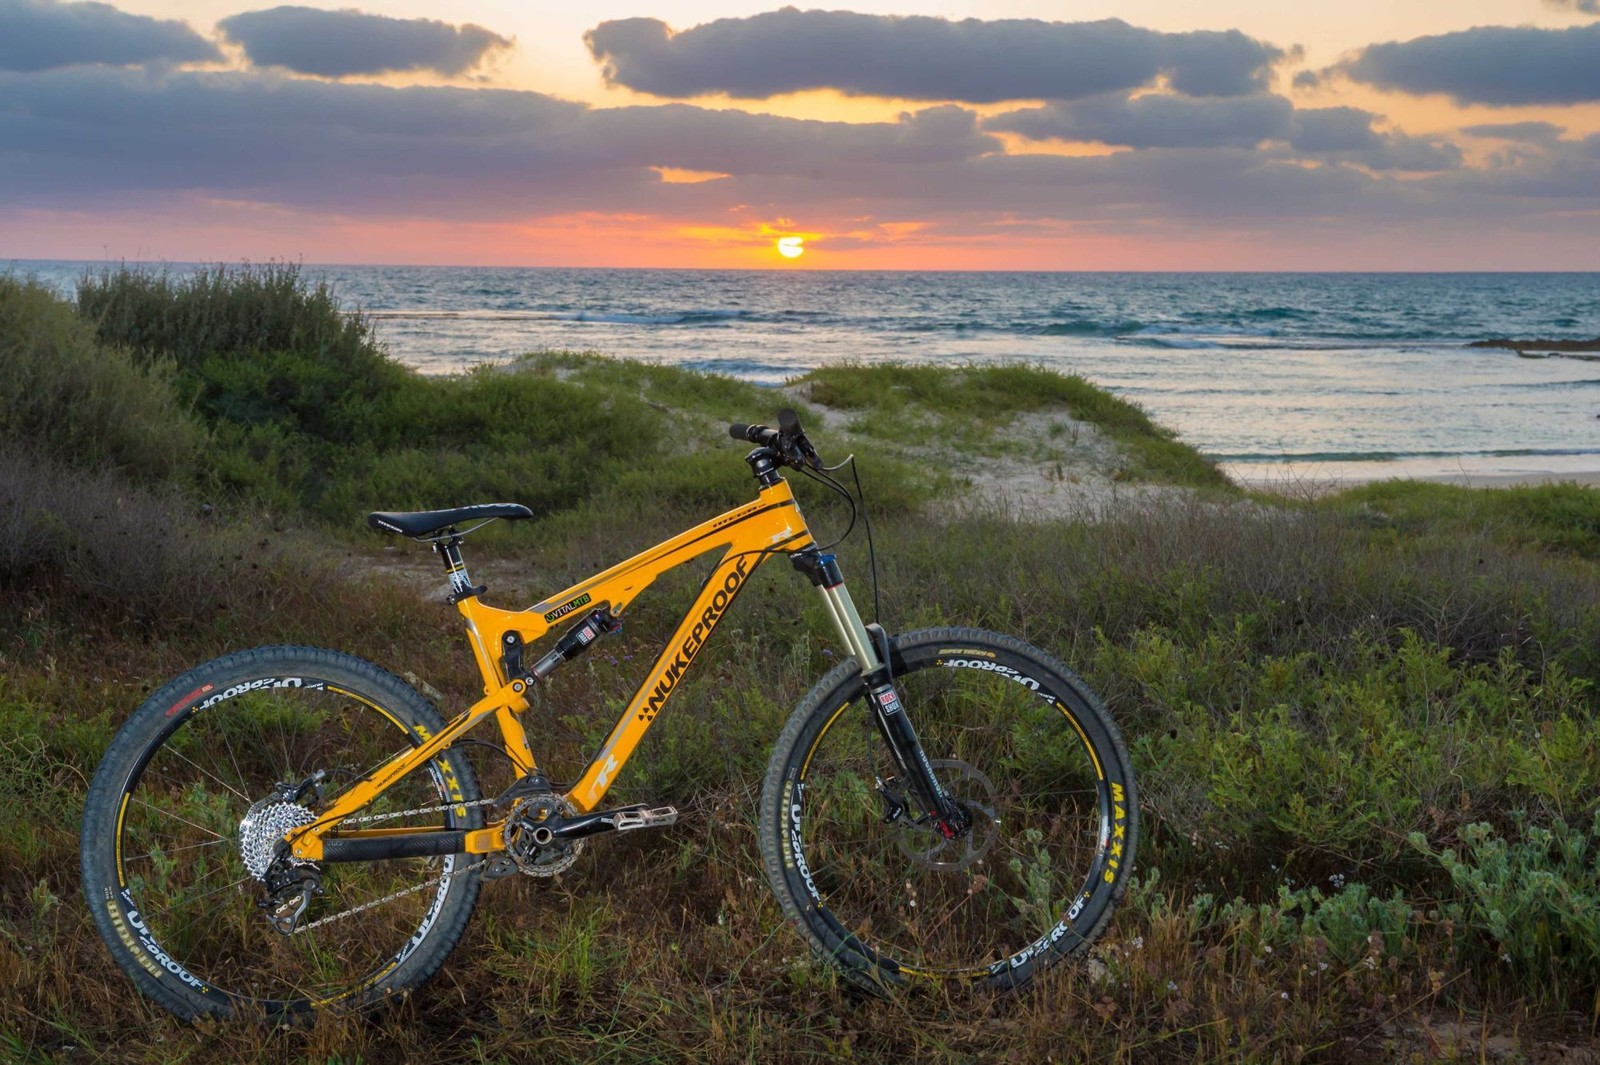 2013 Nukeproof Mega TR - Sunset 2 - iceman2058 - Mountain Biking Pictures - Vital MTB